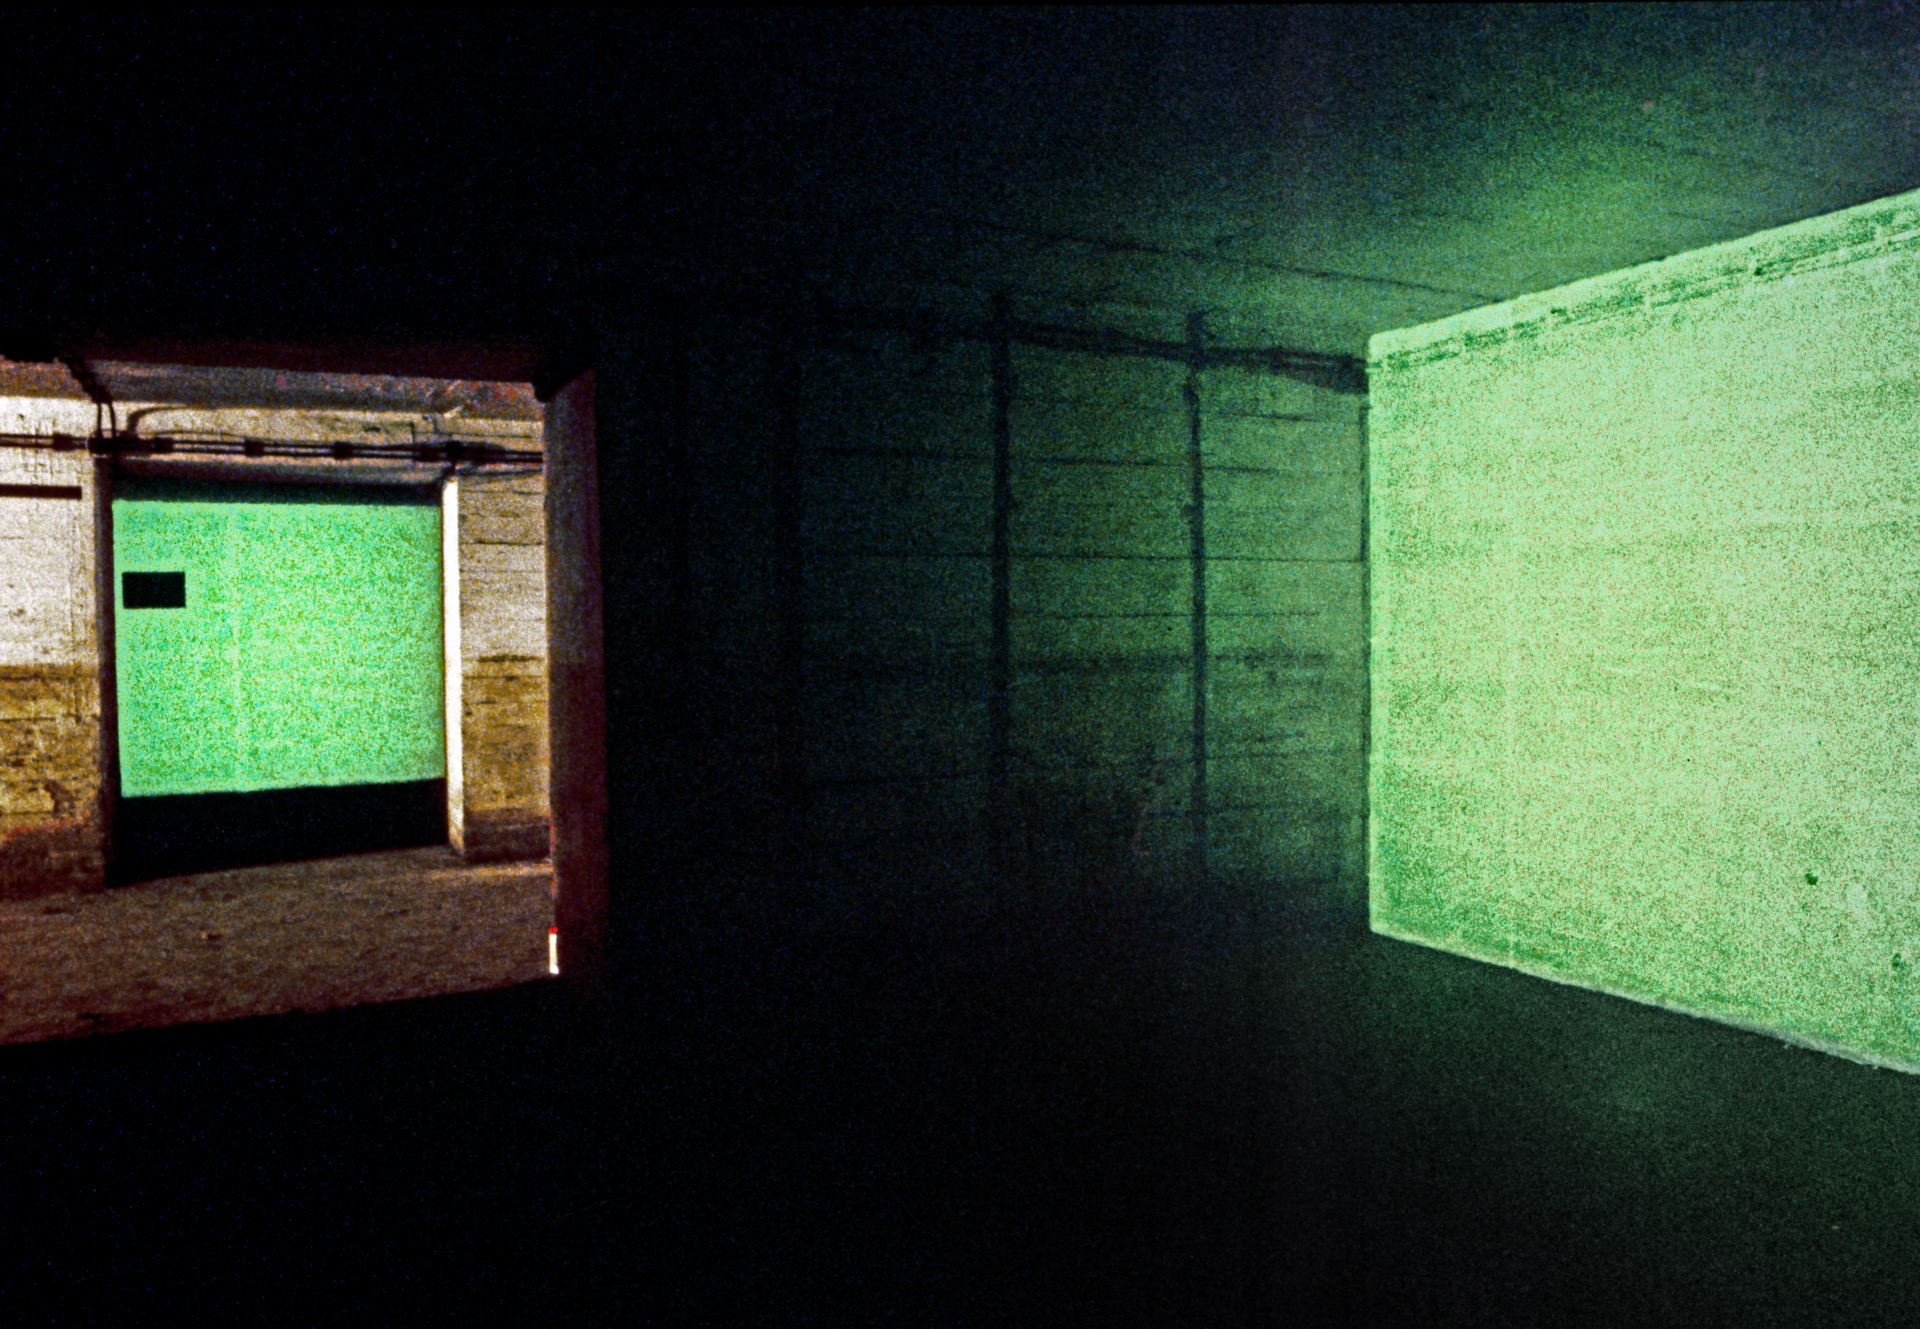 daniel_hausig_safelight_1987_light-art-installation